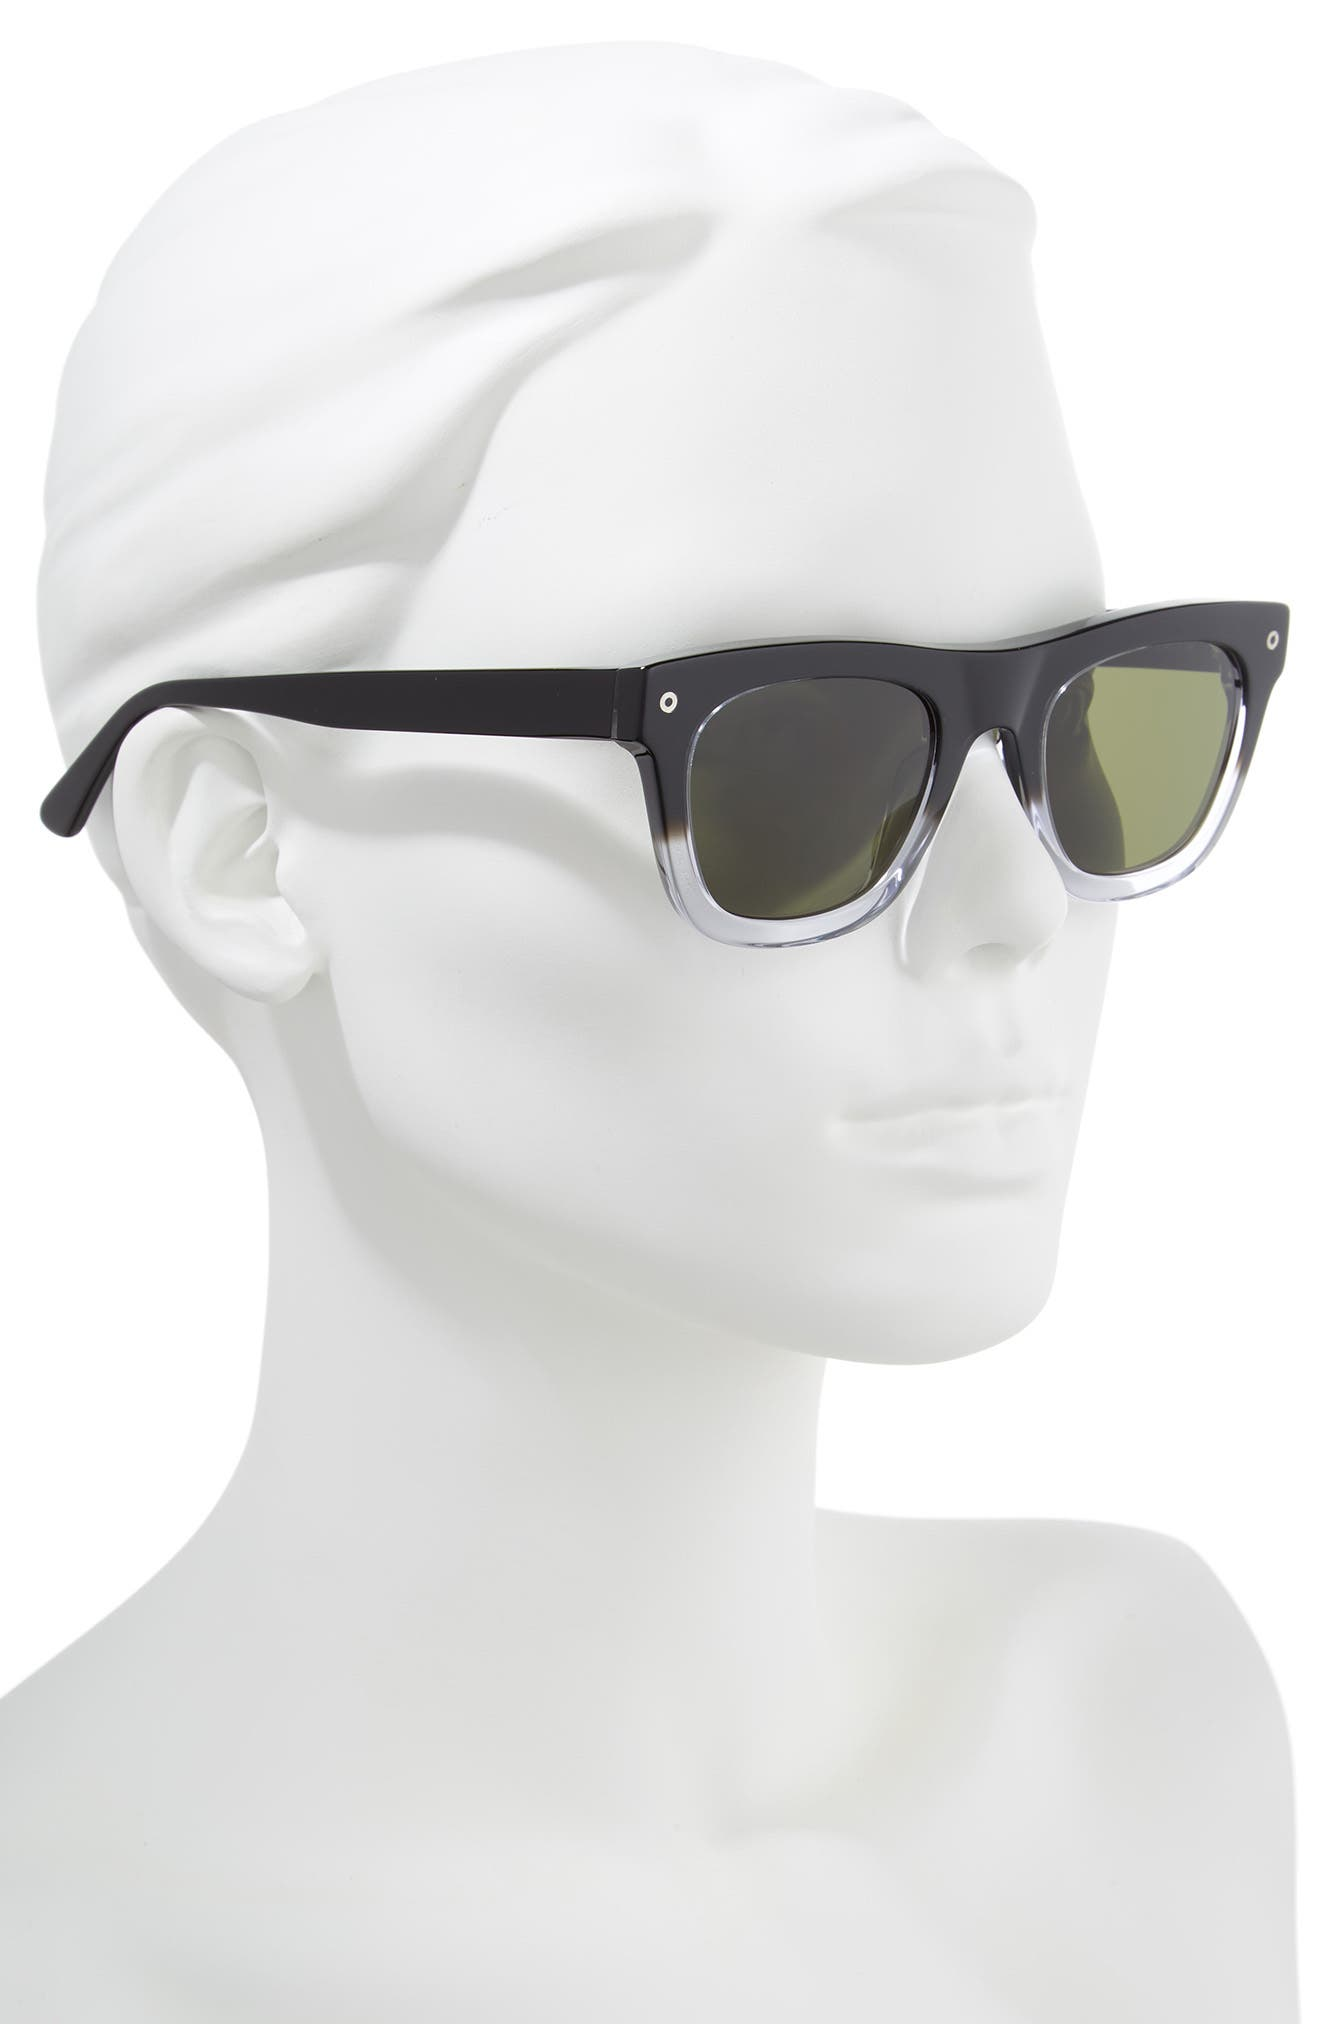 Andersen 49mm Sunglasses,                             Alternate thumbnail 2, color,                             BLACK CLEAR FADE/ GREY